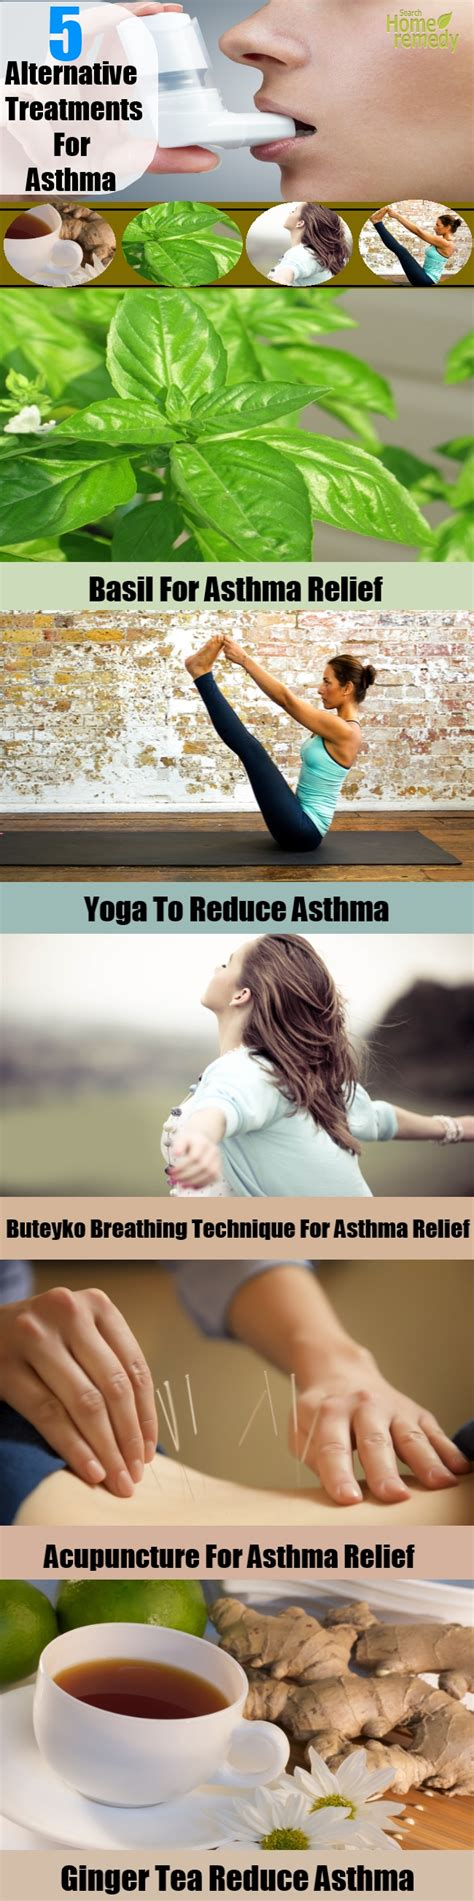 5 Various Alternative Treatments For Asthma, Easy. Limited Liability Corporation Advantages And Disadvantages. Articles For Middle Schoolers. High Quality Photo Print V A Loan Information. Interface Flooring Lagrange Ga. Consolidated Credit Card Services. How Much Do Forensic Scientists Make. Phone Number For Kaspersky Auto Shops Denver. Dr Goosey Houston Eye Associates